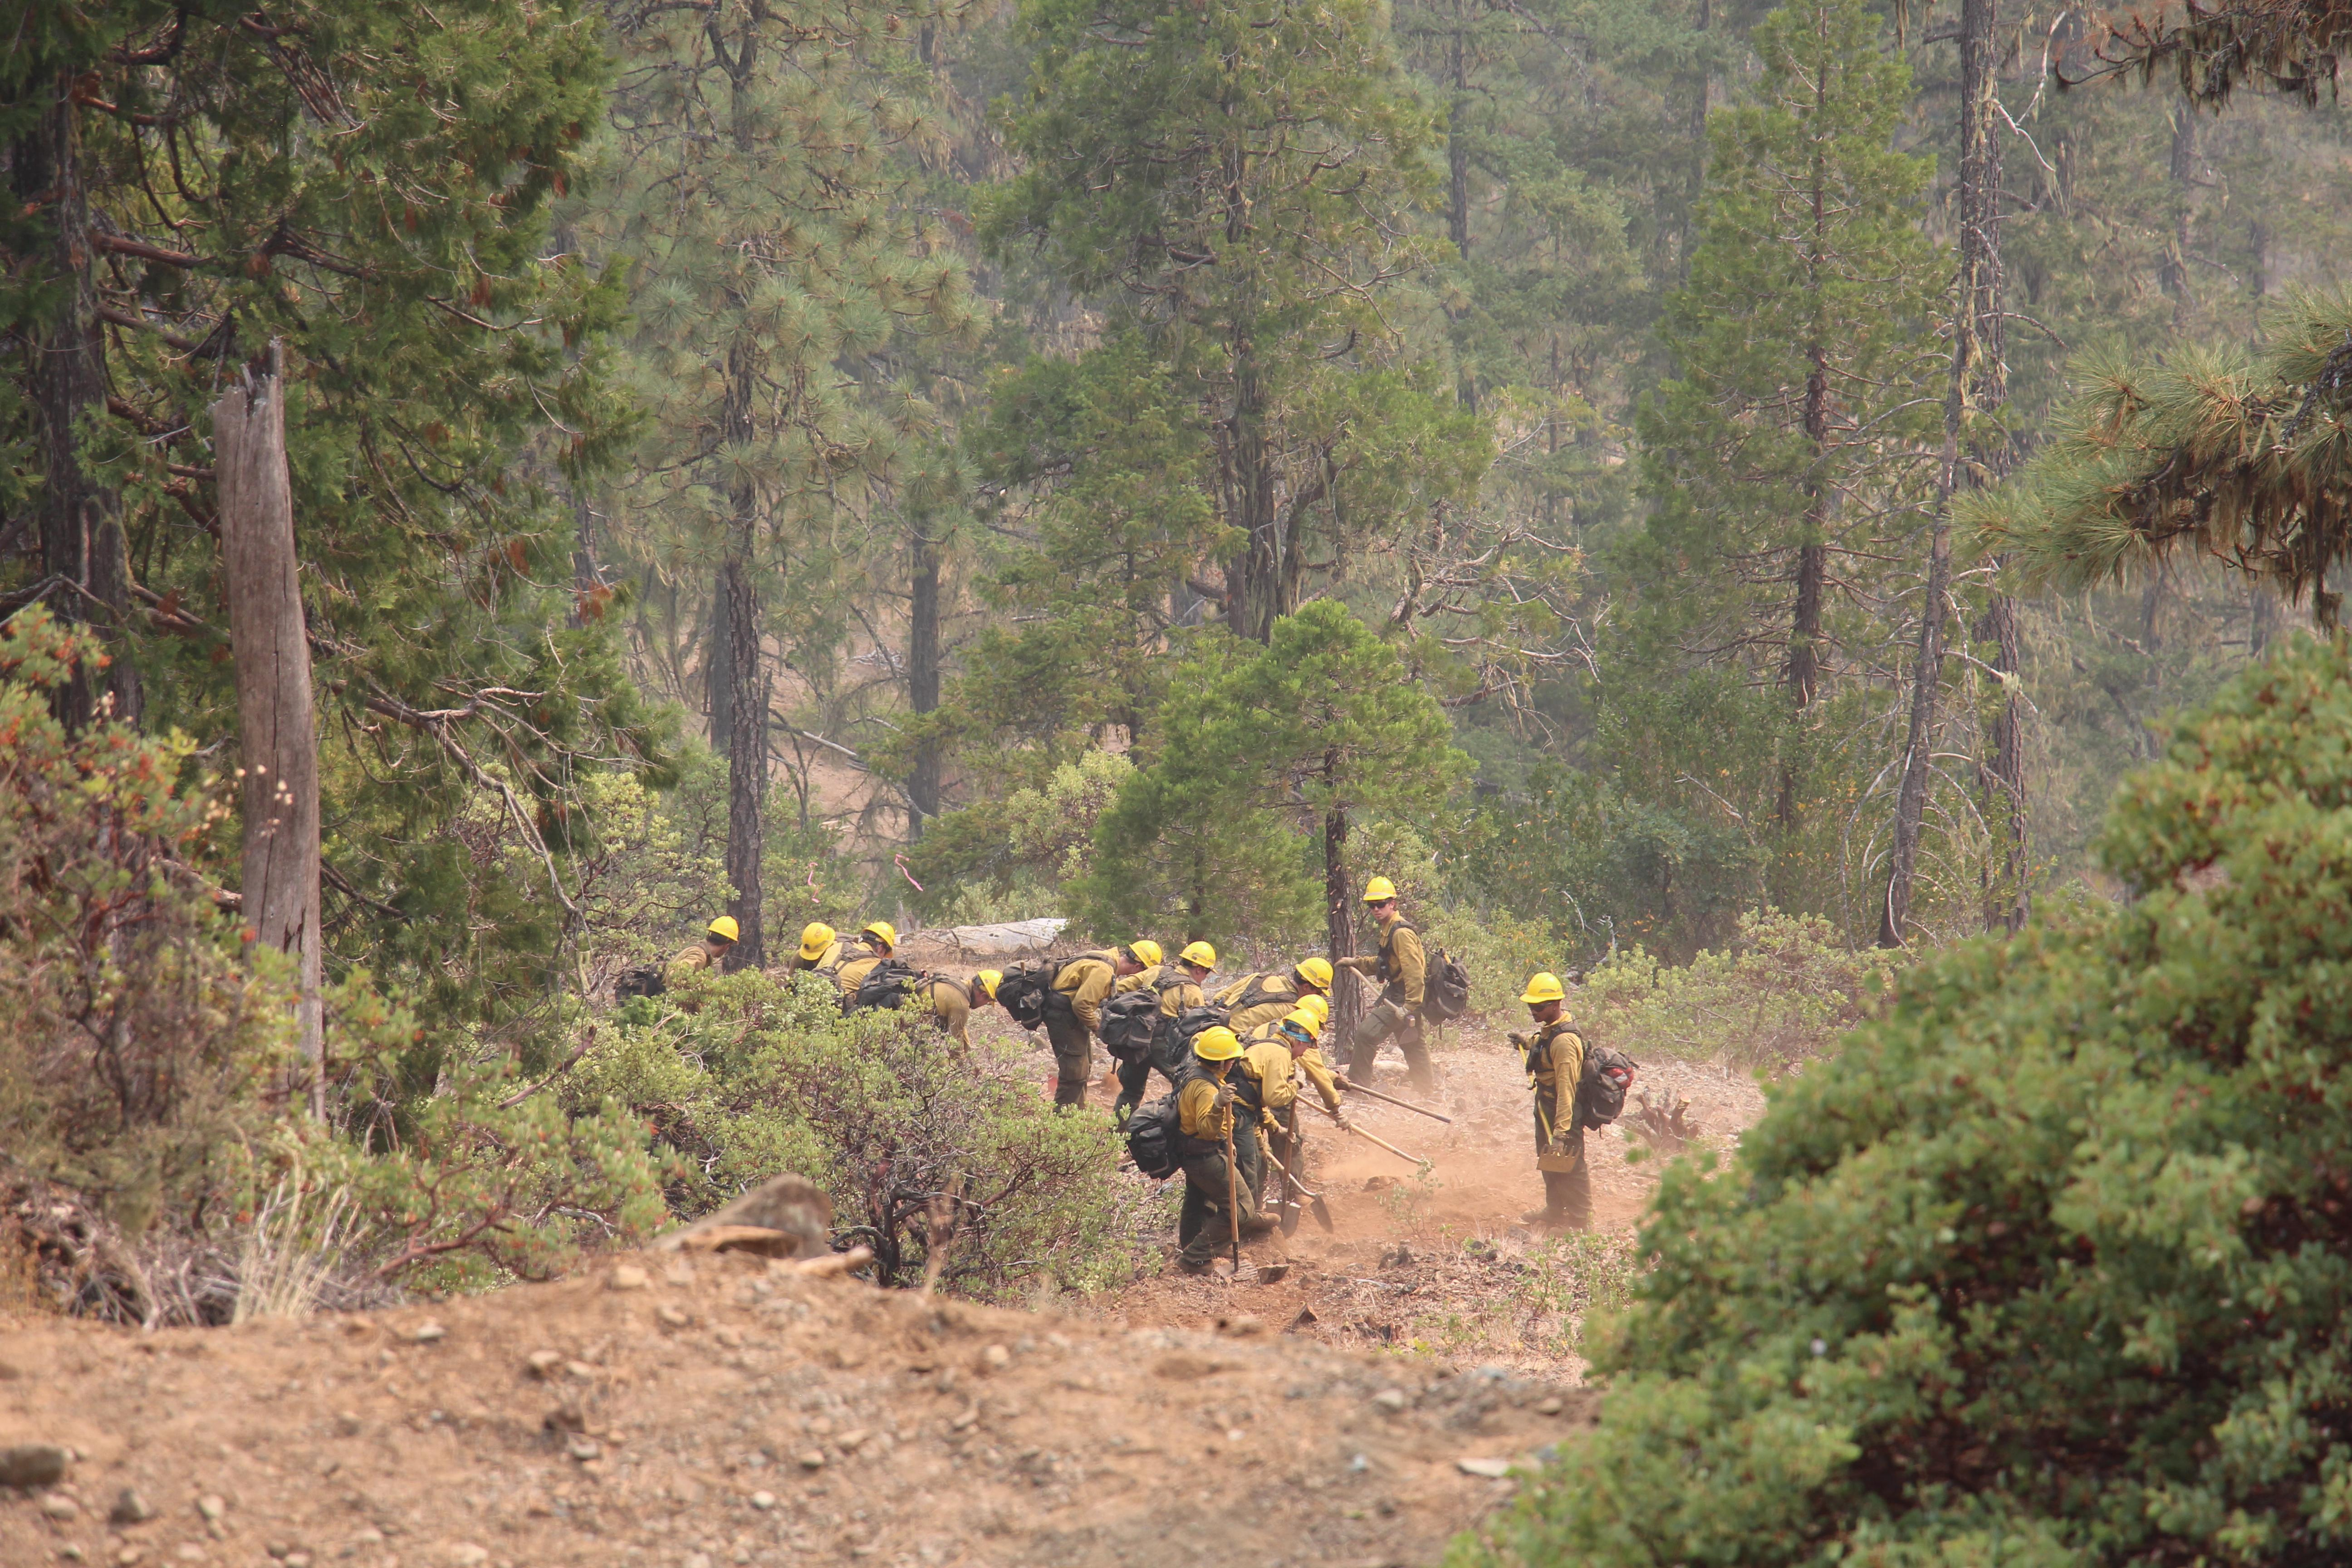 Photo by Annette McGee Rasch<br>Crews work on a firebreak on the Klondike fire.